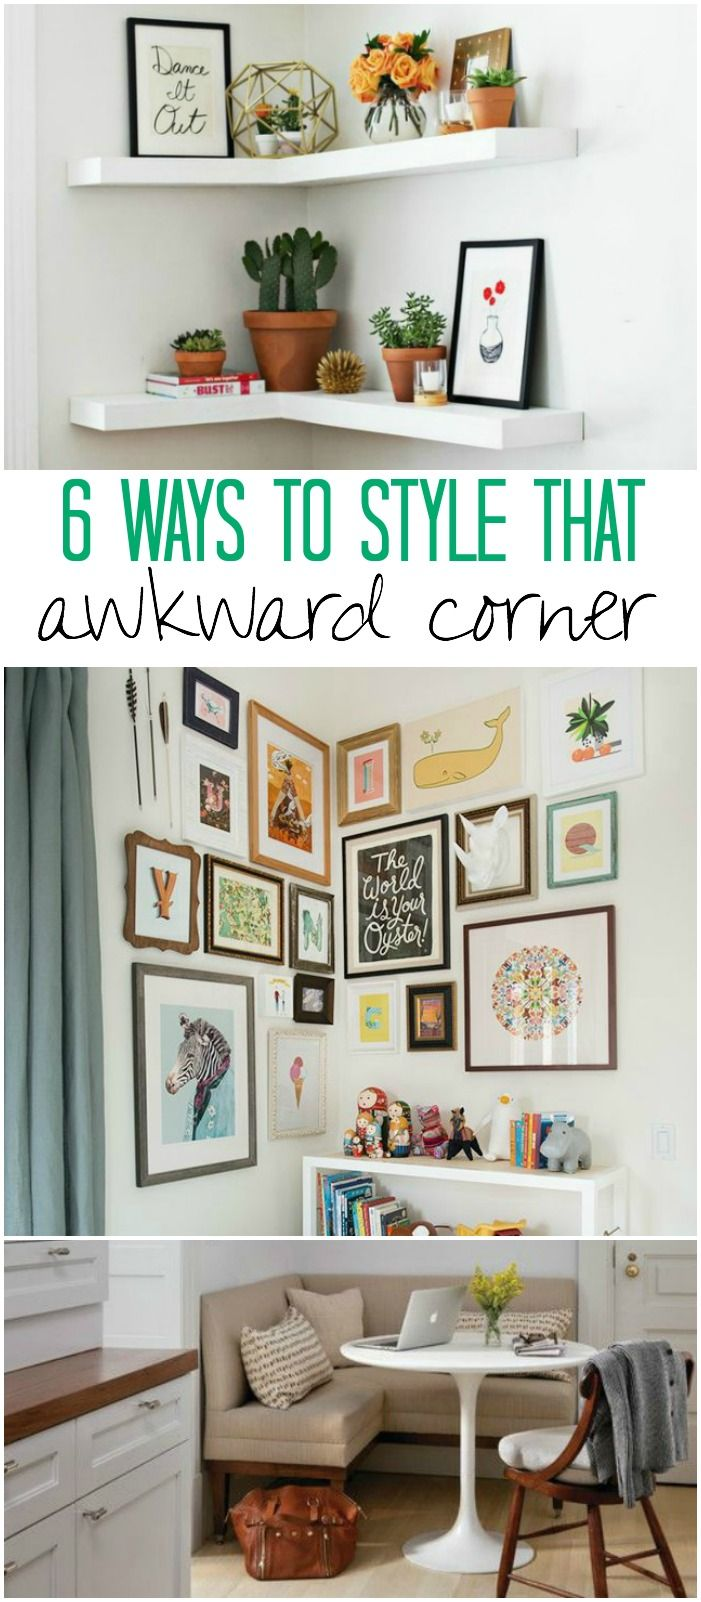 6 Clever Ideas How To Style Awkward Corners In Your